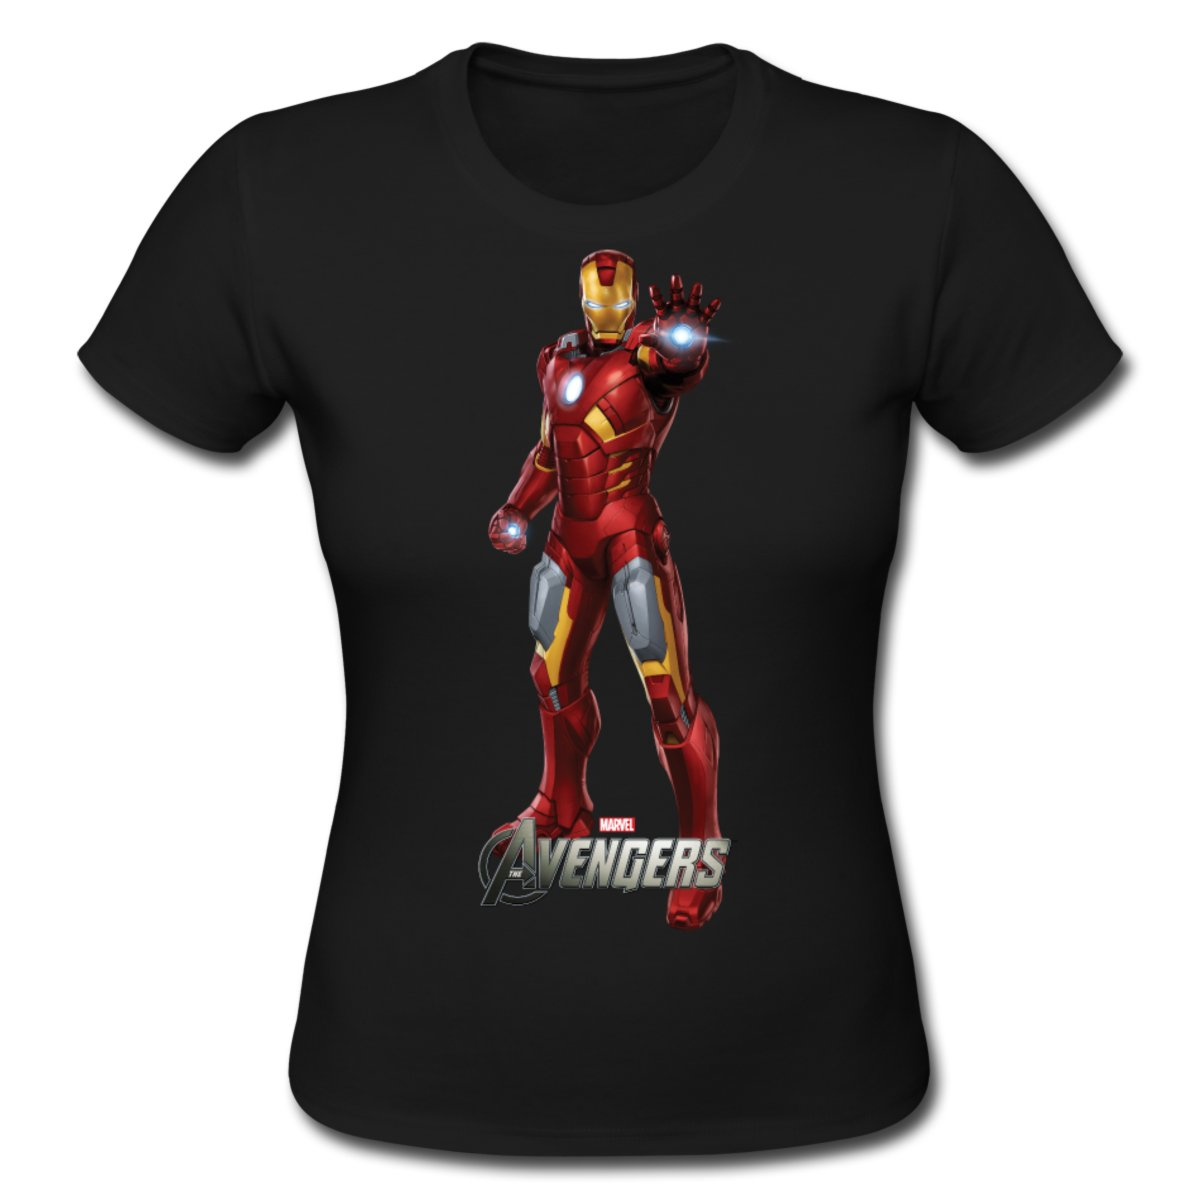 Daily Tee Iron Man t shirt design from spreadshirt black for girl Iron Man t shirt design from spreadshirt